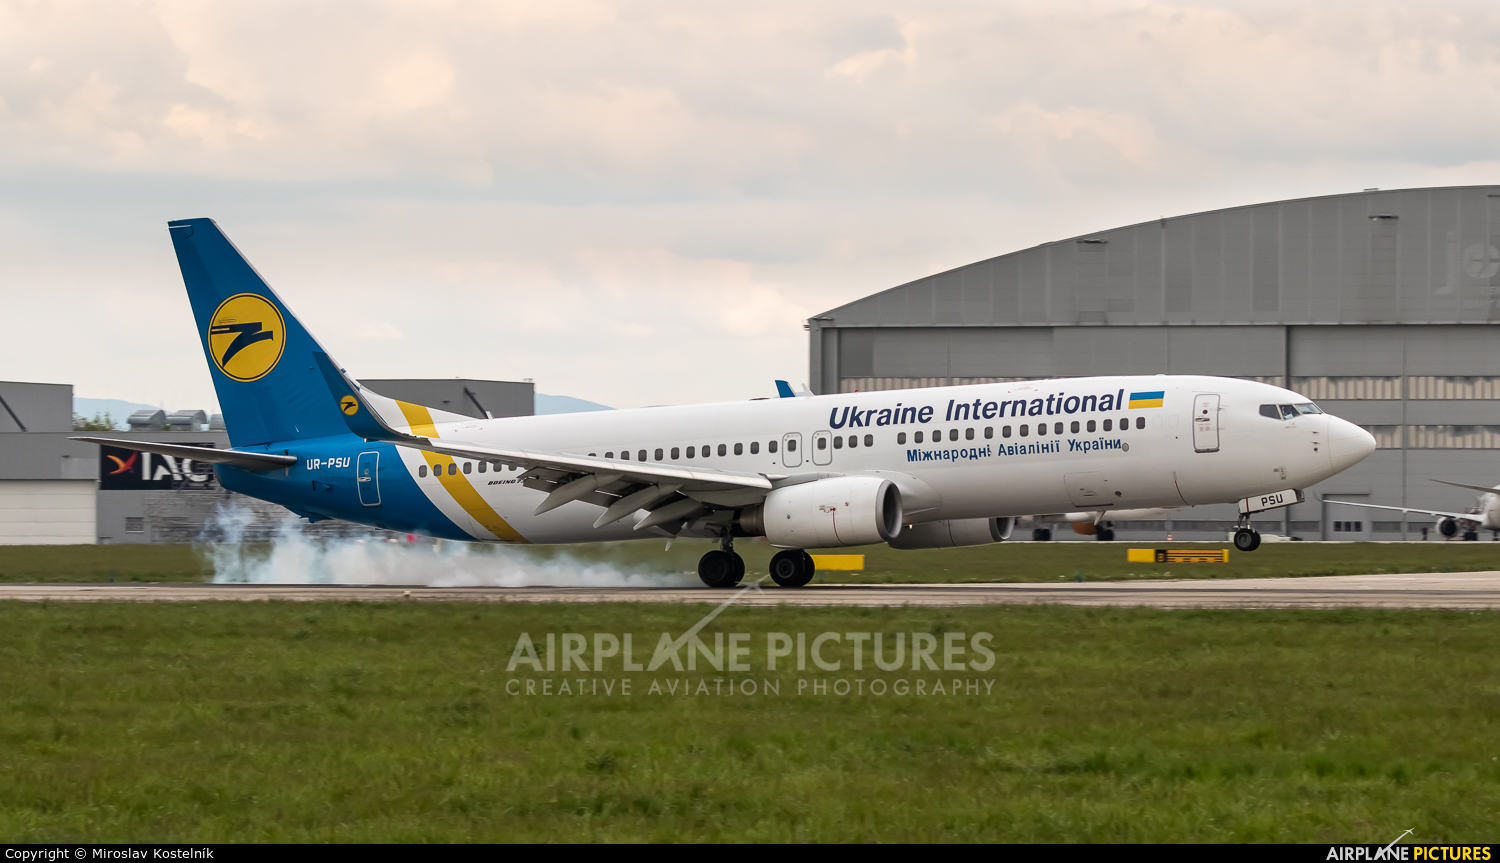 Ukraine International Airlines UR-PSU aircraft at Ostrava Mošnov